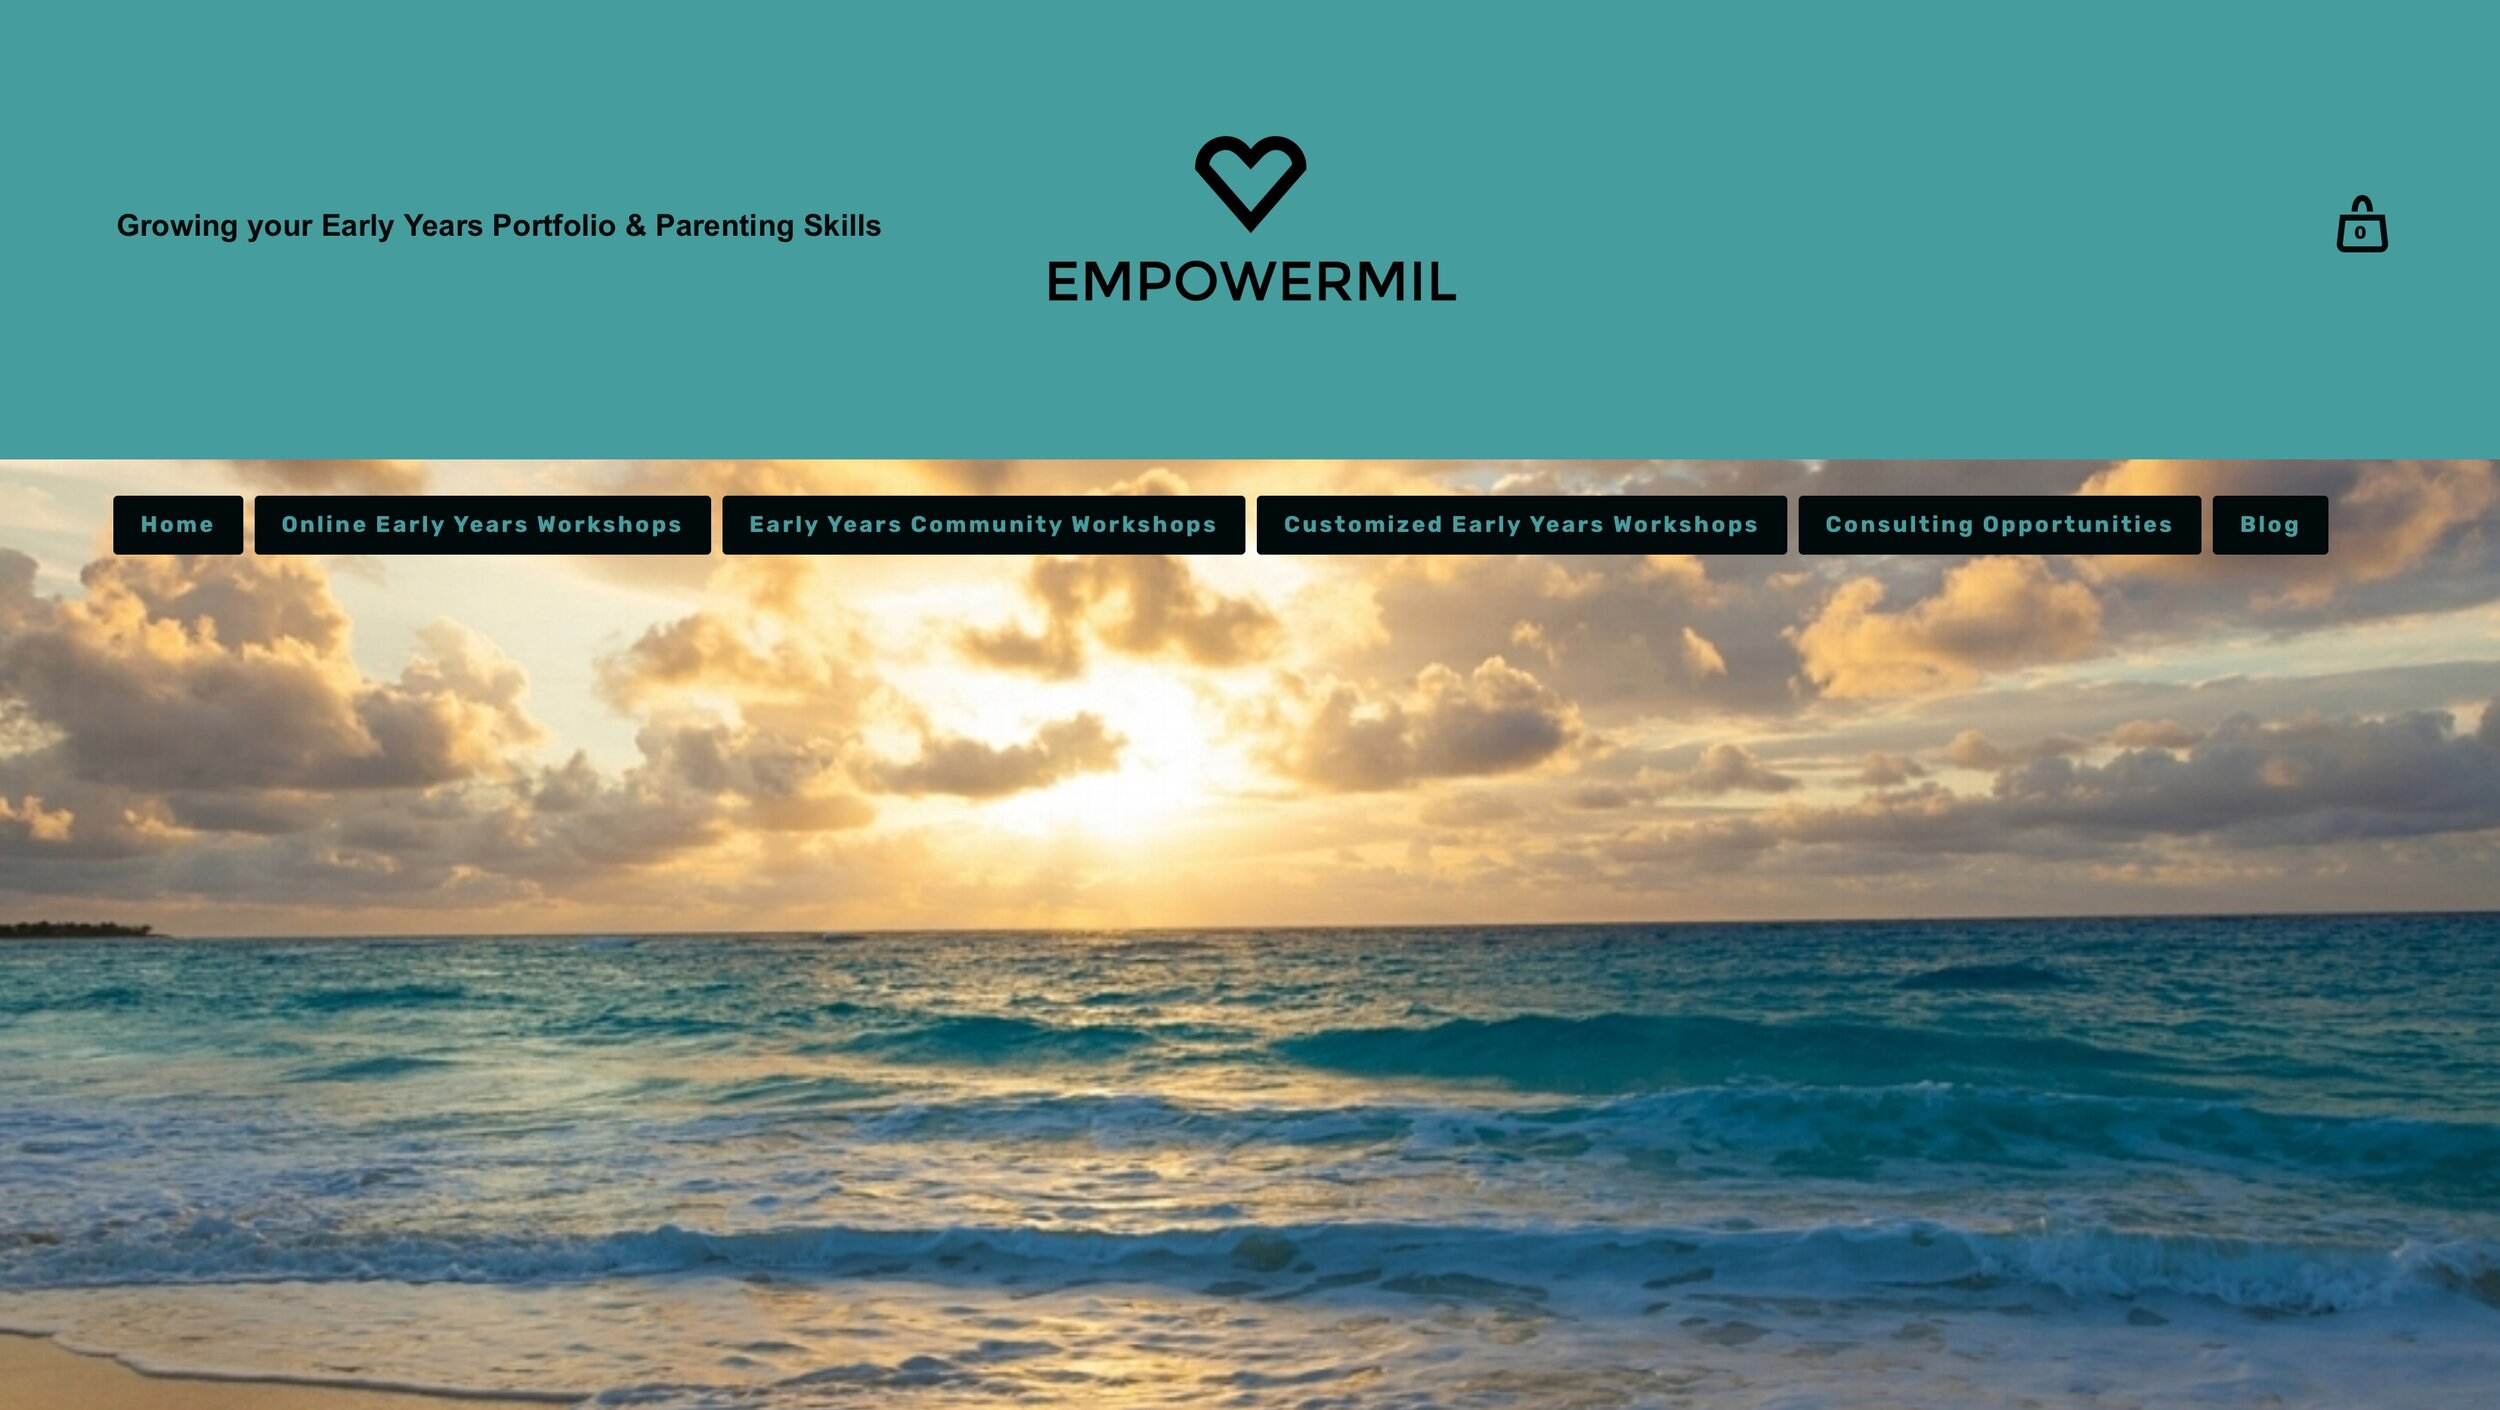 Empowermil - Donna Halme Designs created a Squarespace website design for Empowermil. This website was created so it reflected both the owner's holistic approach to life, combined with her love of humanity and nature. All calendars, community and online e-commerce workshops are displayed and incorporated with an ease of registration, payment, download, and certification by visitors to her site. A new business email through GSuite was setup along with the registration of the new domain name. All social media accounts were connected plus a Blog was added. The Empowermil website incorporates many Calendars in tandem with eCommerce in online and Community workshops, along with the ability for students to pay and download these workshops. Empowermil ecommerce visitors can access a constant, secure connection on every page of the site. Through SSL, Empowermil visitors see a lock icon next to the URL in the browser, showing that their information is safe. This is a technology that secures the connection between the browser and the website being visited.